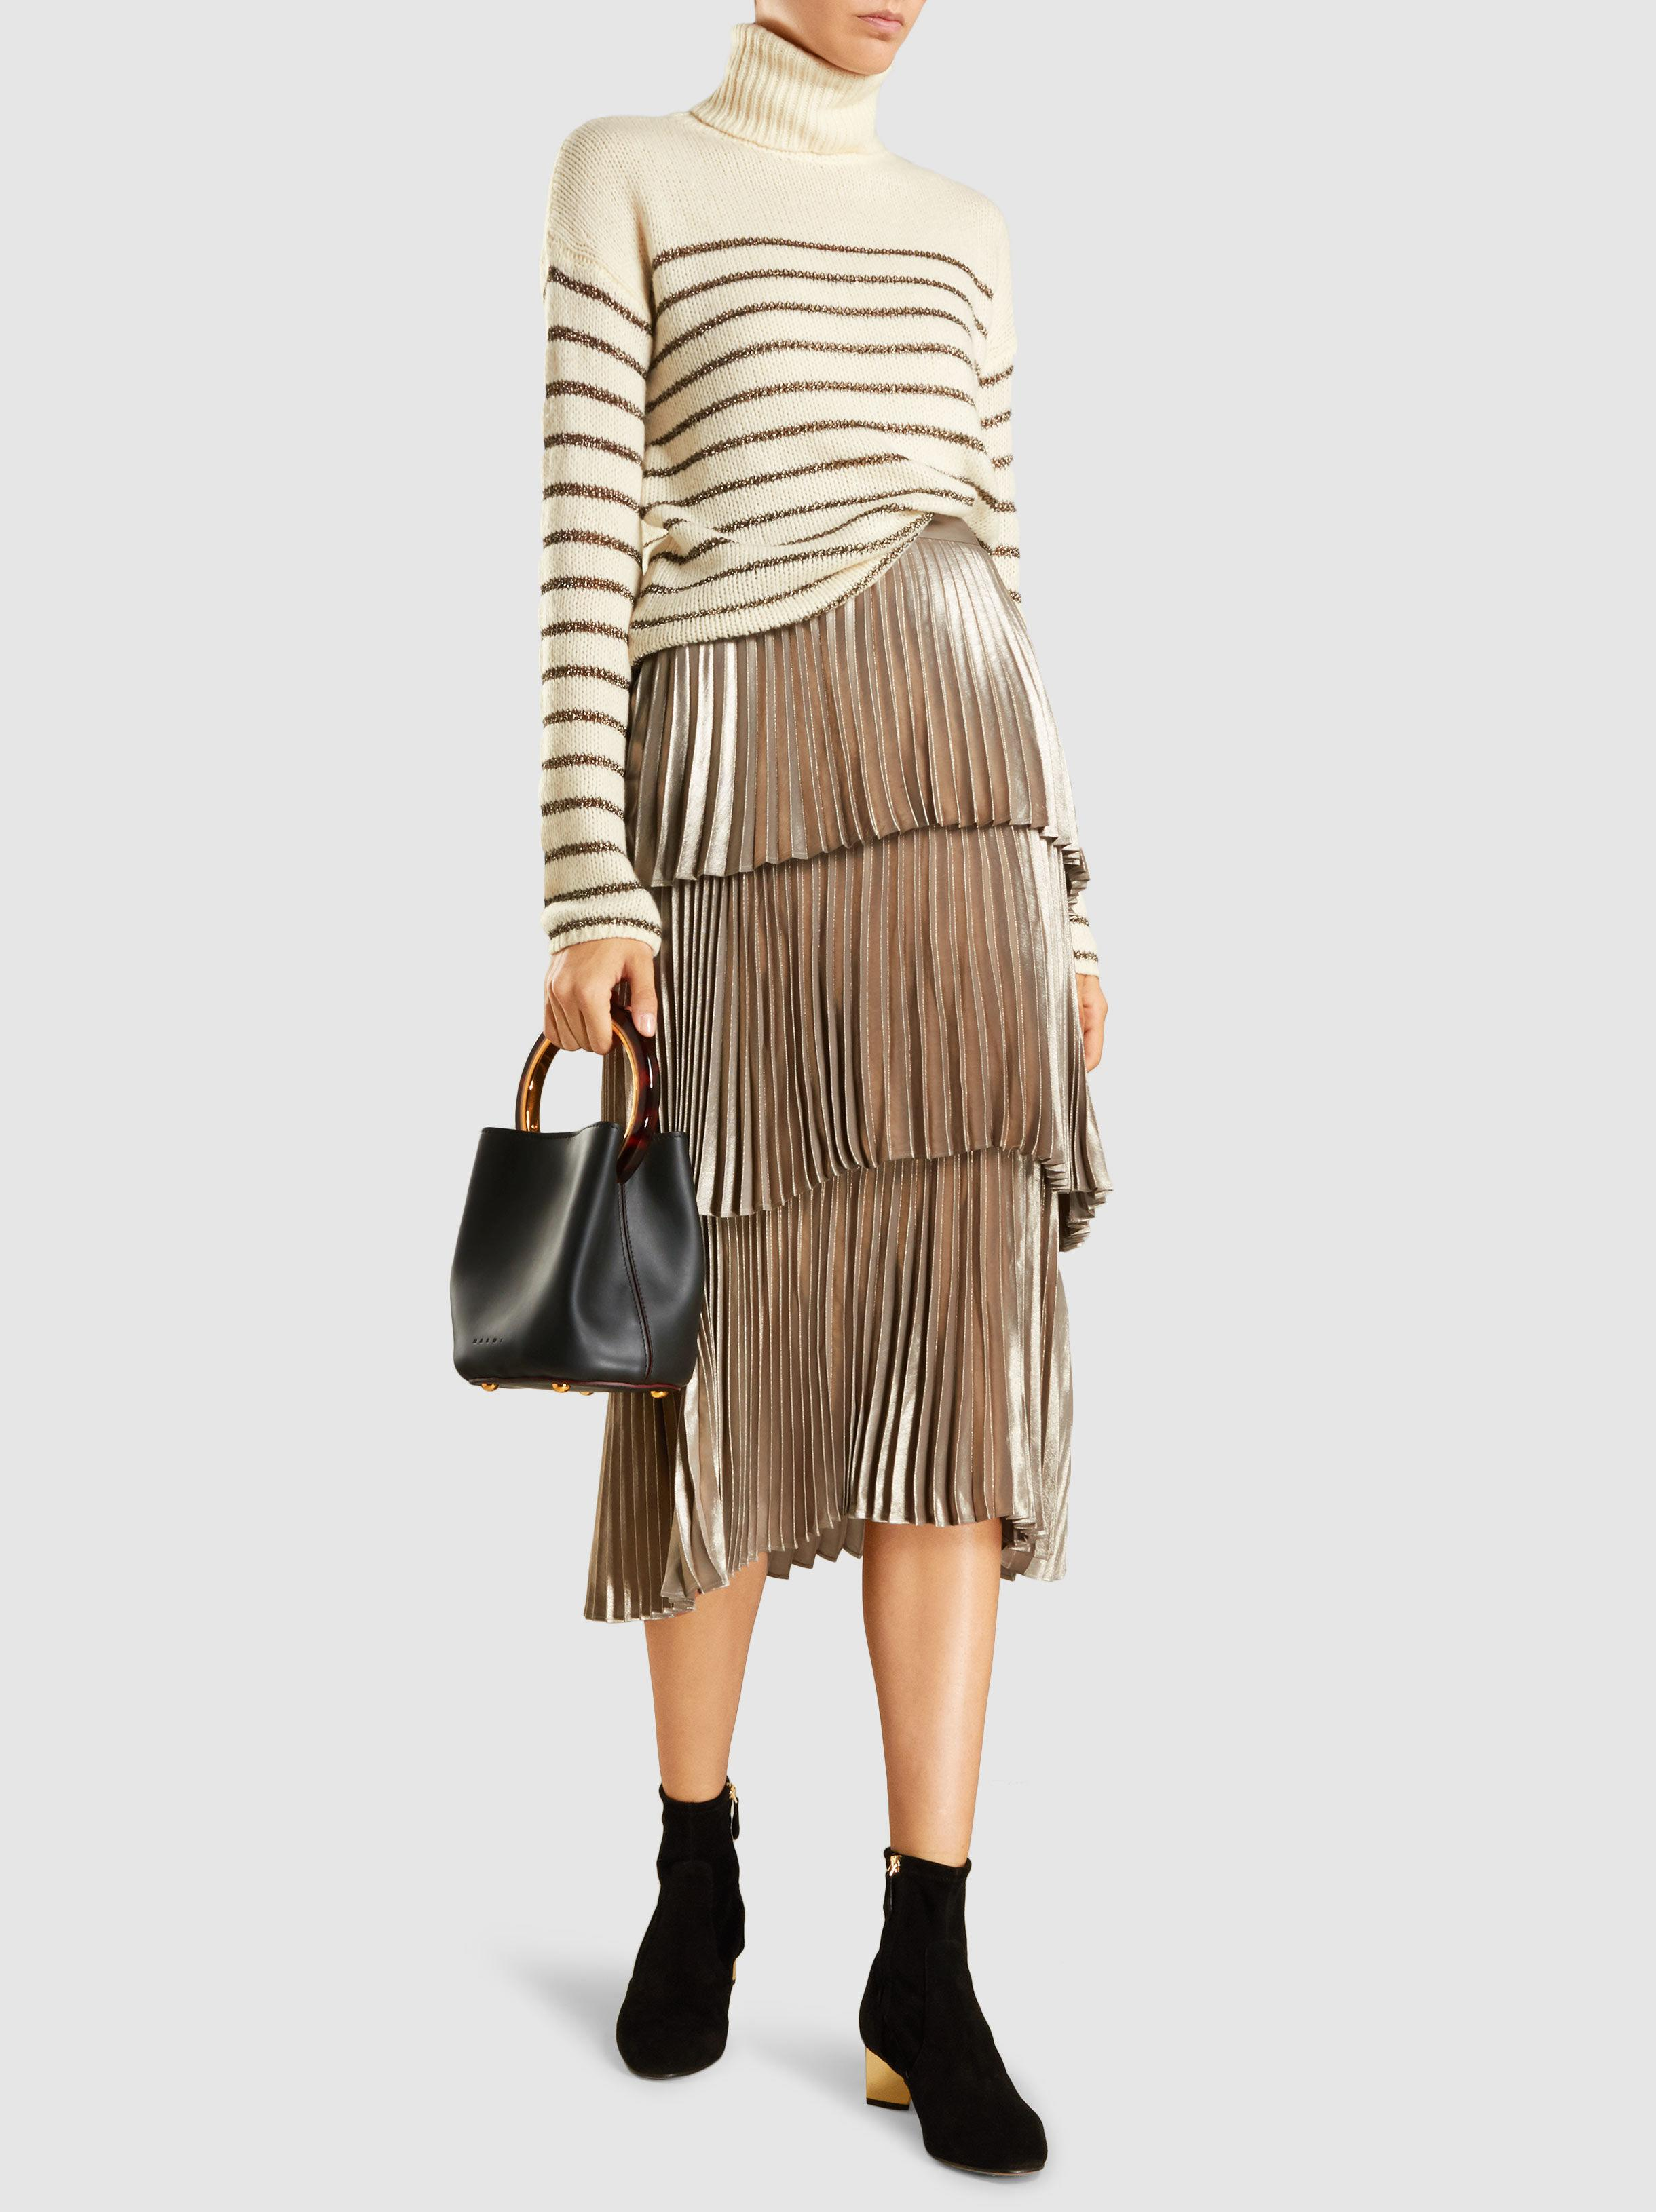 Buy Cheap Recommend Harley Tiered Metallic Satin Midi Skirt A.L.C. Sneakernews Shop Offer Cheap Online Great Deals Online TJ2UJvHLH